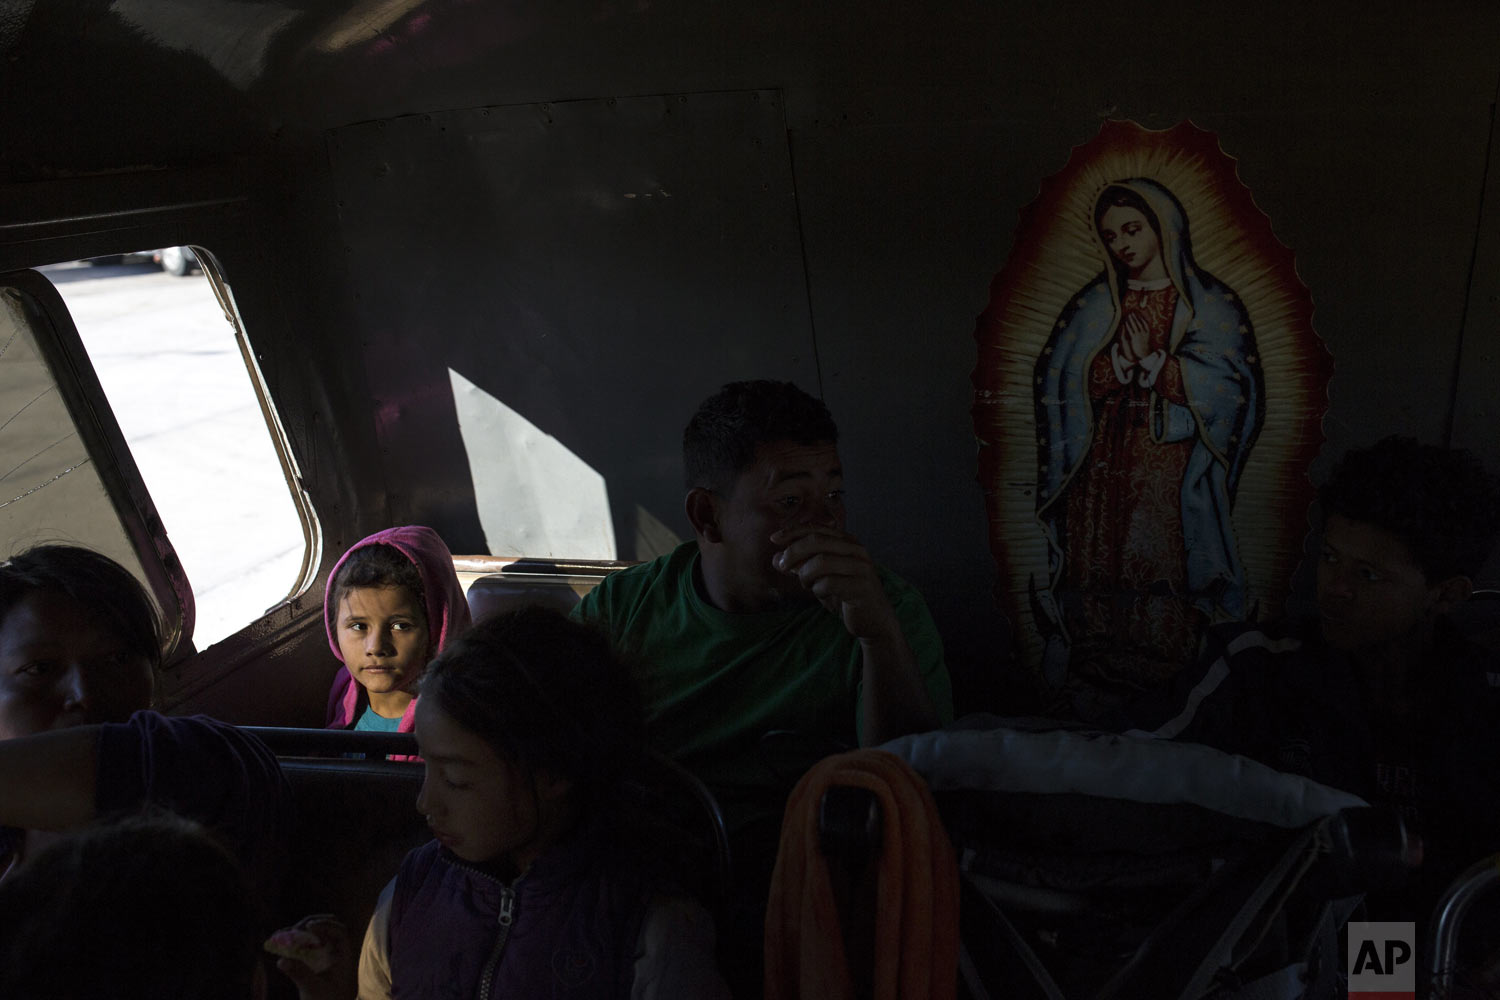 Genesis Mejia, 7, who is part of the Central American caravan hoping to reach the U.S. border, sits inside a bus in La Concha, Mexico, Wednesday, Nov. 14, 2018. Buses and trucks are carrying some migrants into the state of Sinaloa along the Gulf of California and further northward into the border state of Sonora. The bulk of the main caravan appeared to be about 1,100 miles from the border, but was moving hundreds of miles per day. At right is an image of the Virgin of Guadalupe. (AP Photo/Rodrigo Abd)